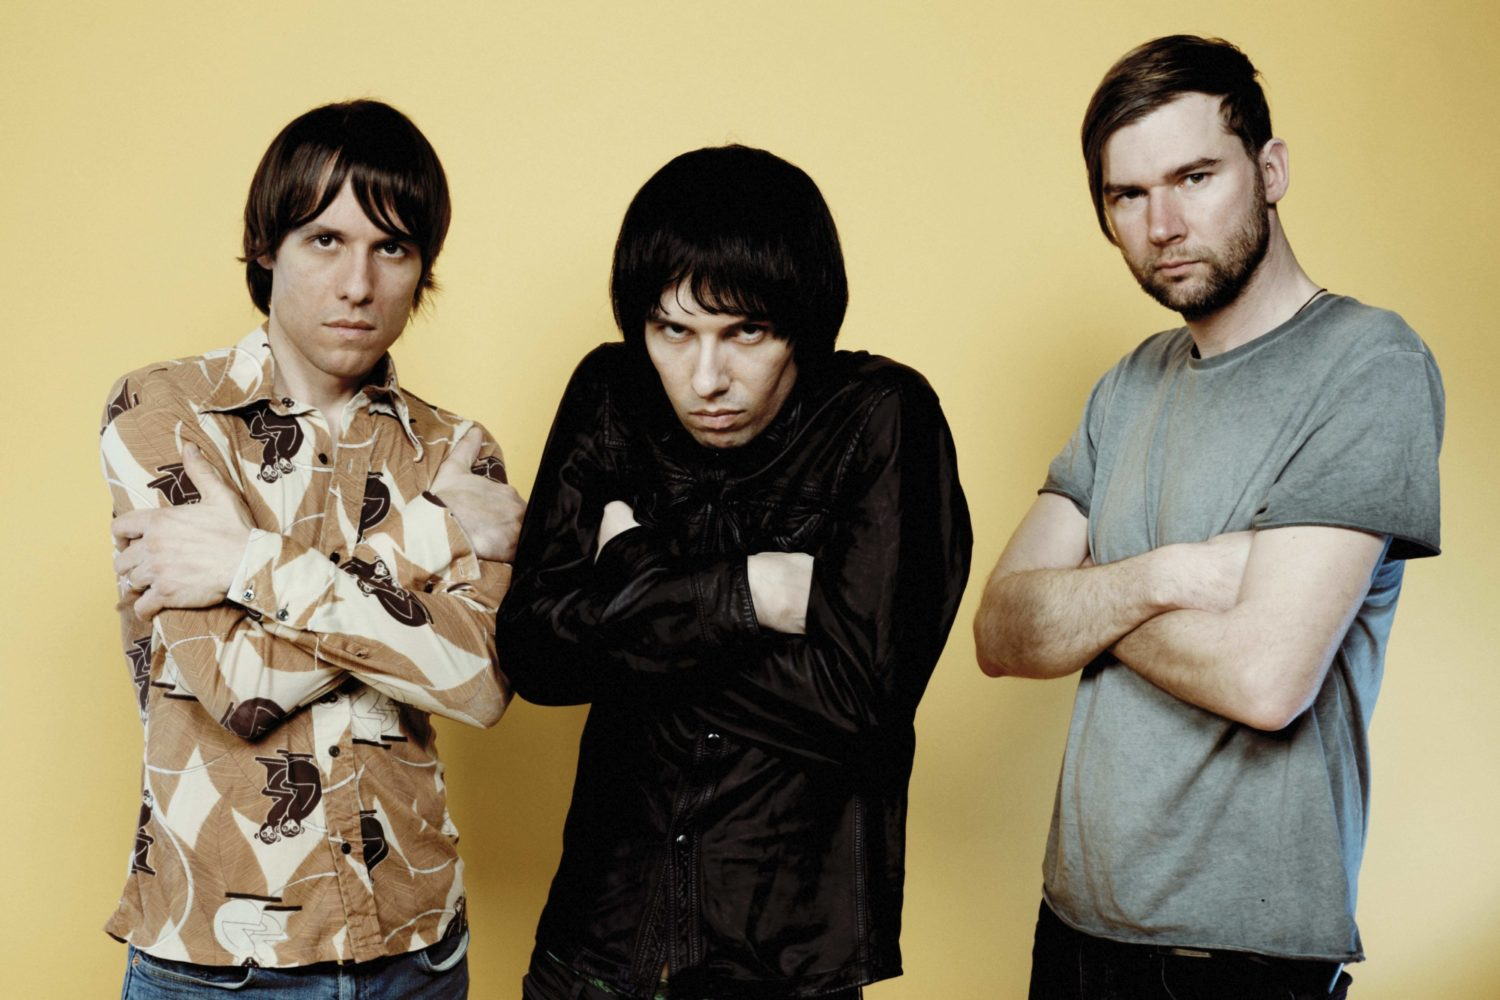 The Cribs reveal 'Swinging At Shadows' video